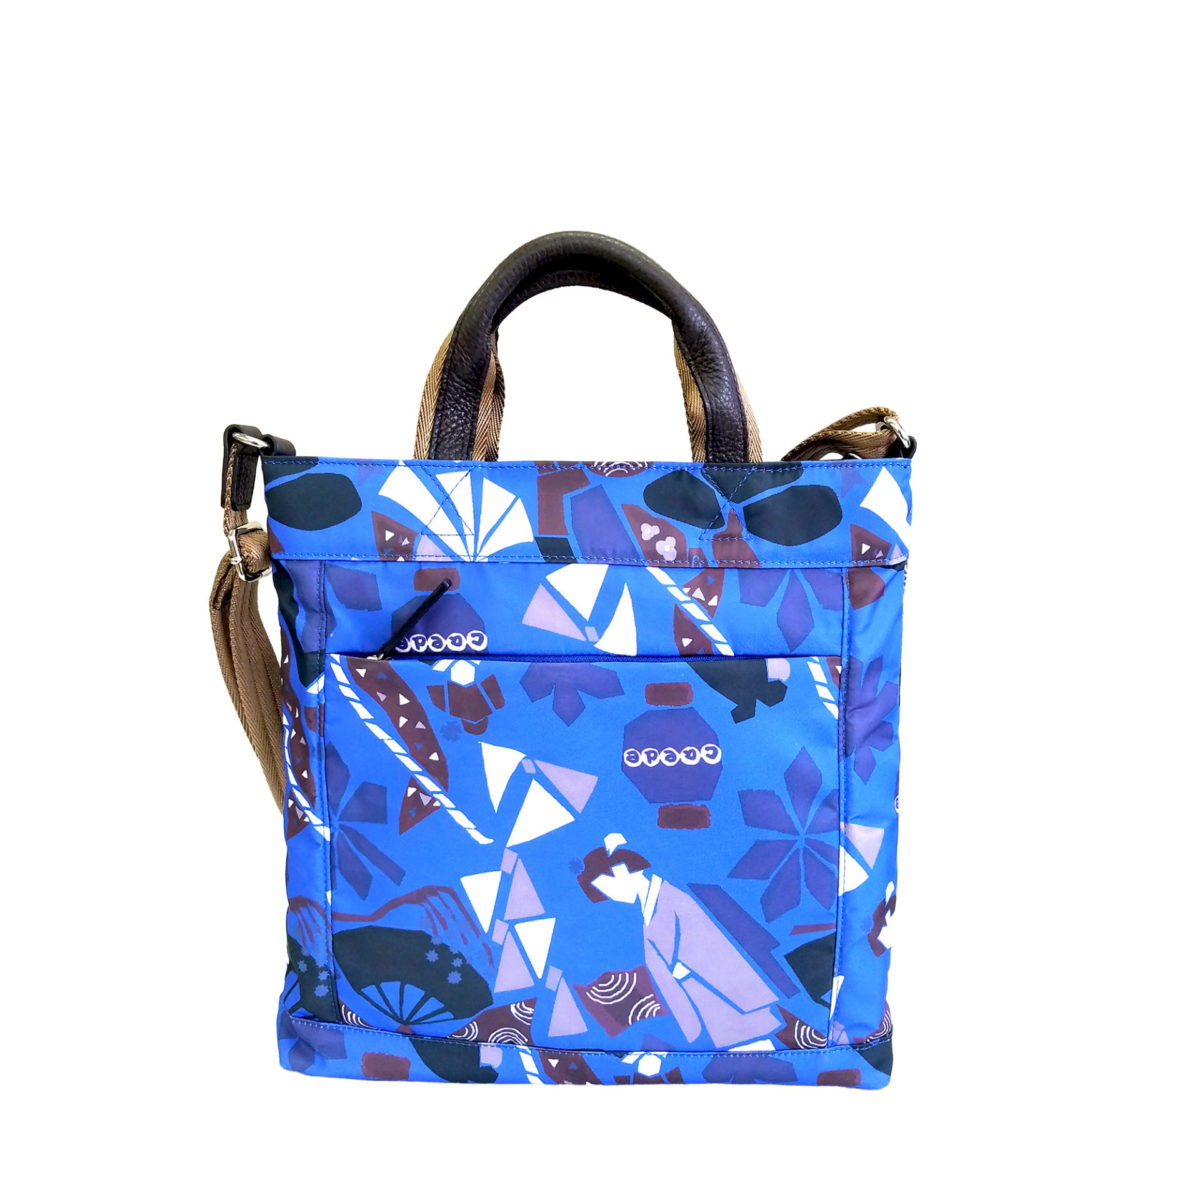 Maiko Puzzle Etna shoulder blue